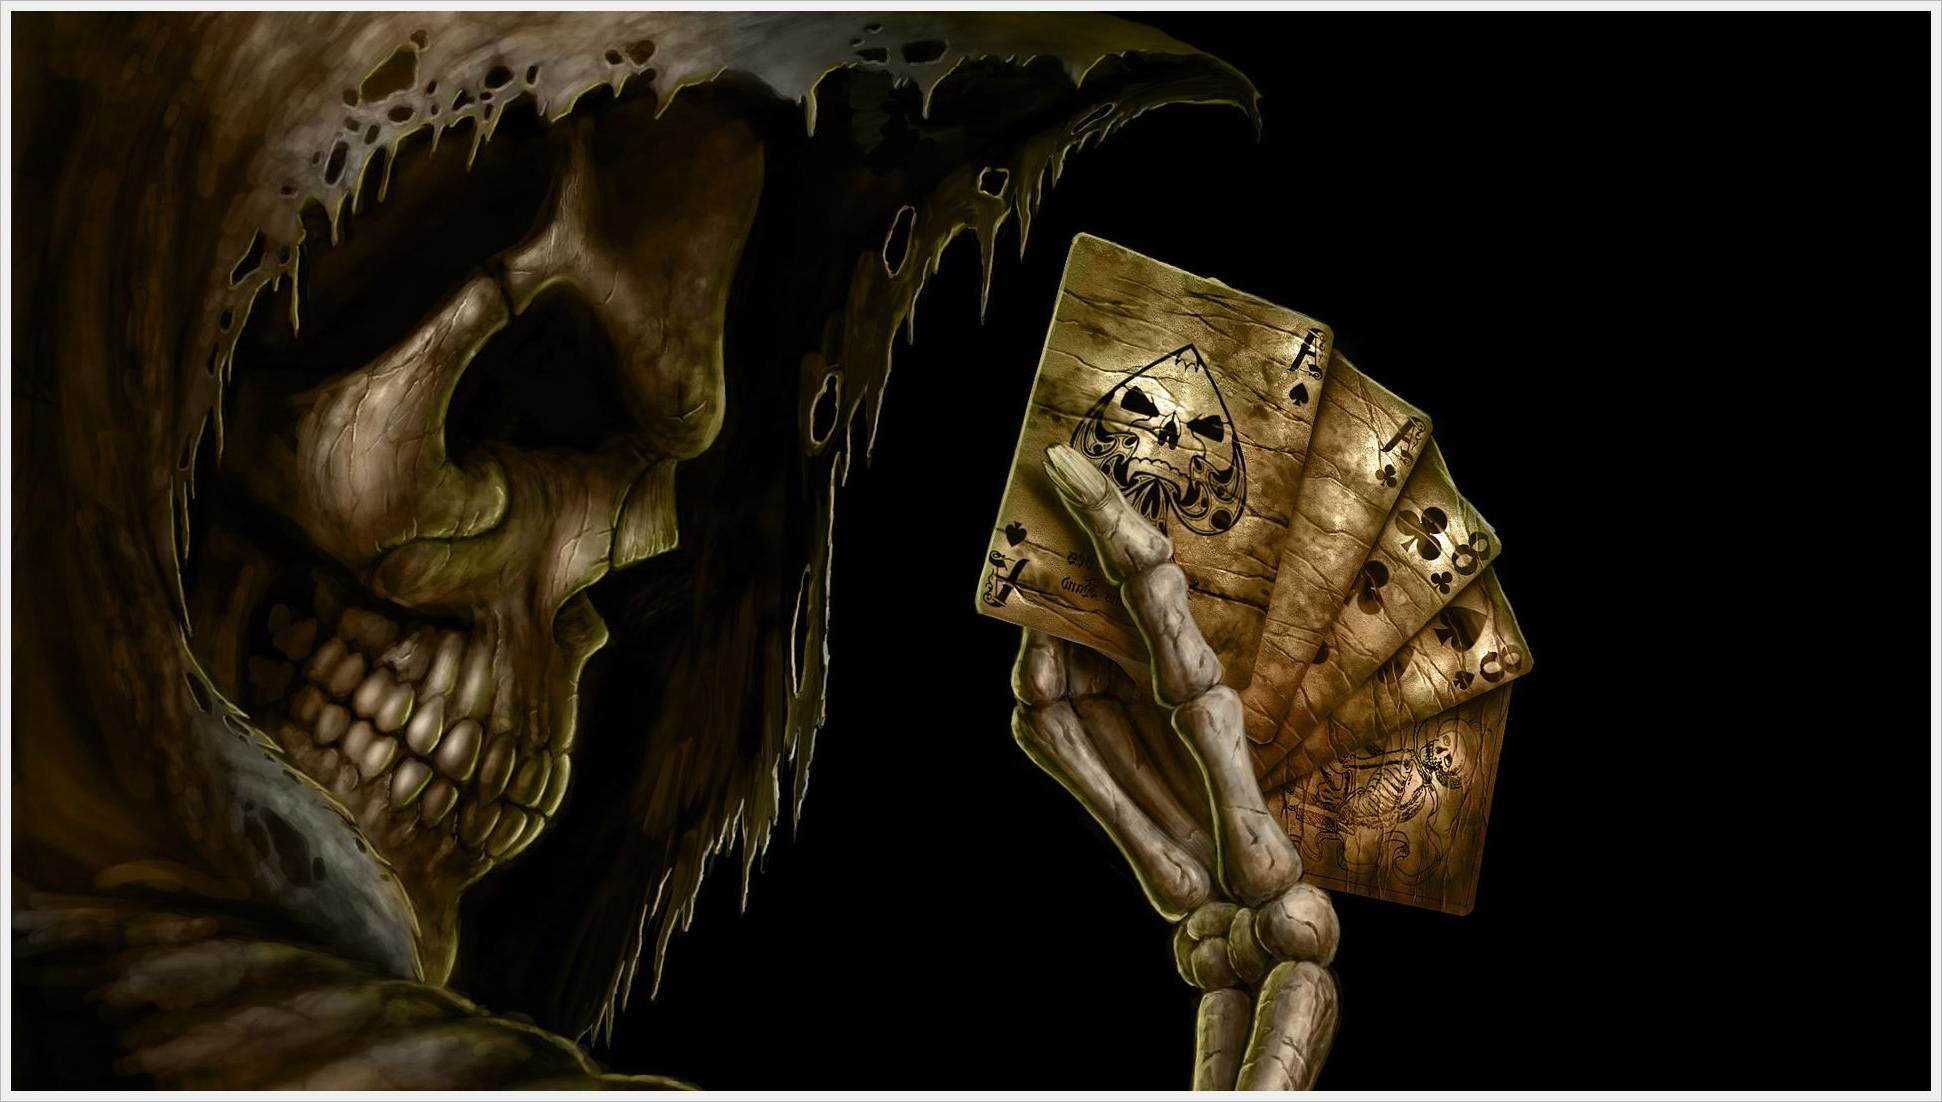 Animated Horror Skull | HD Wallpapers Images